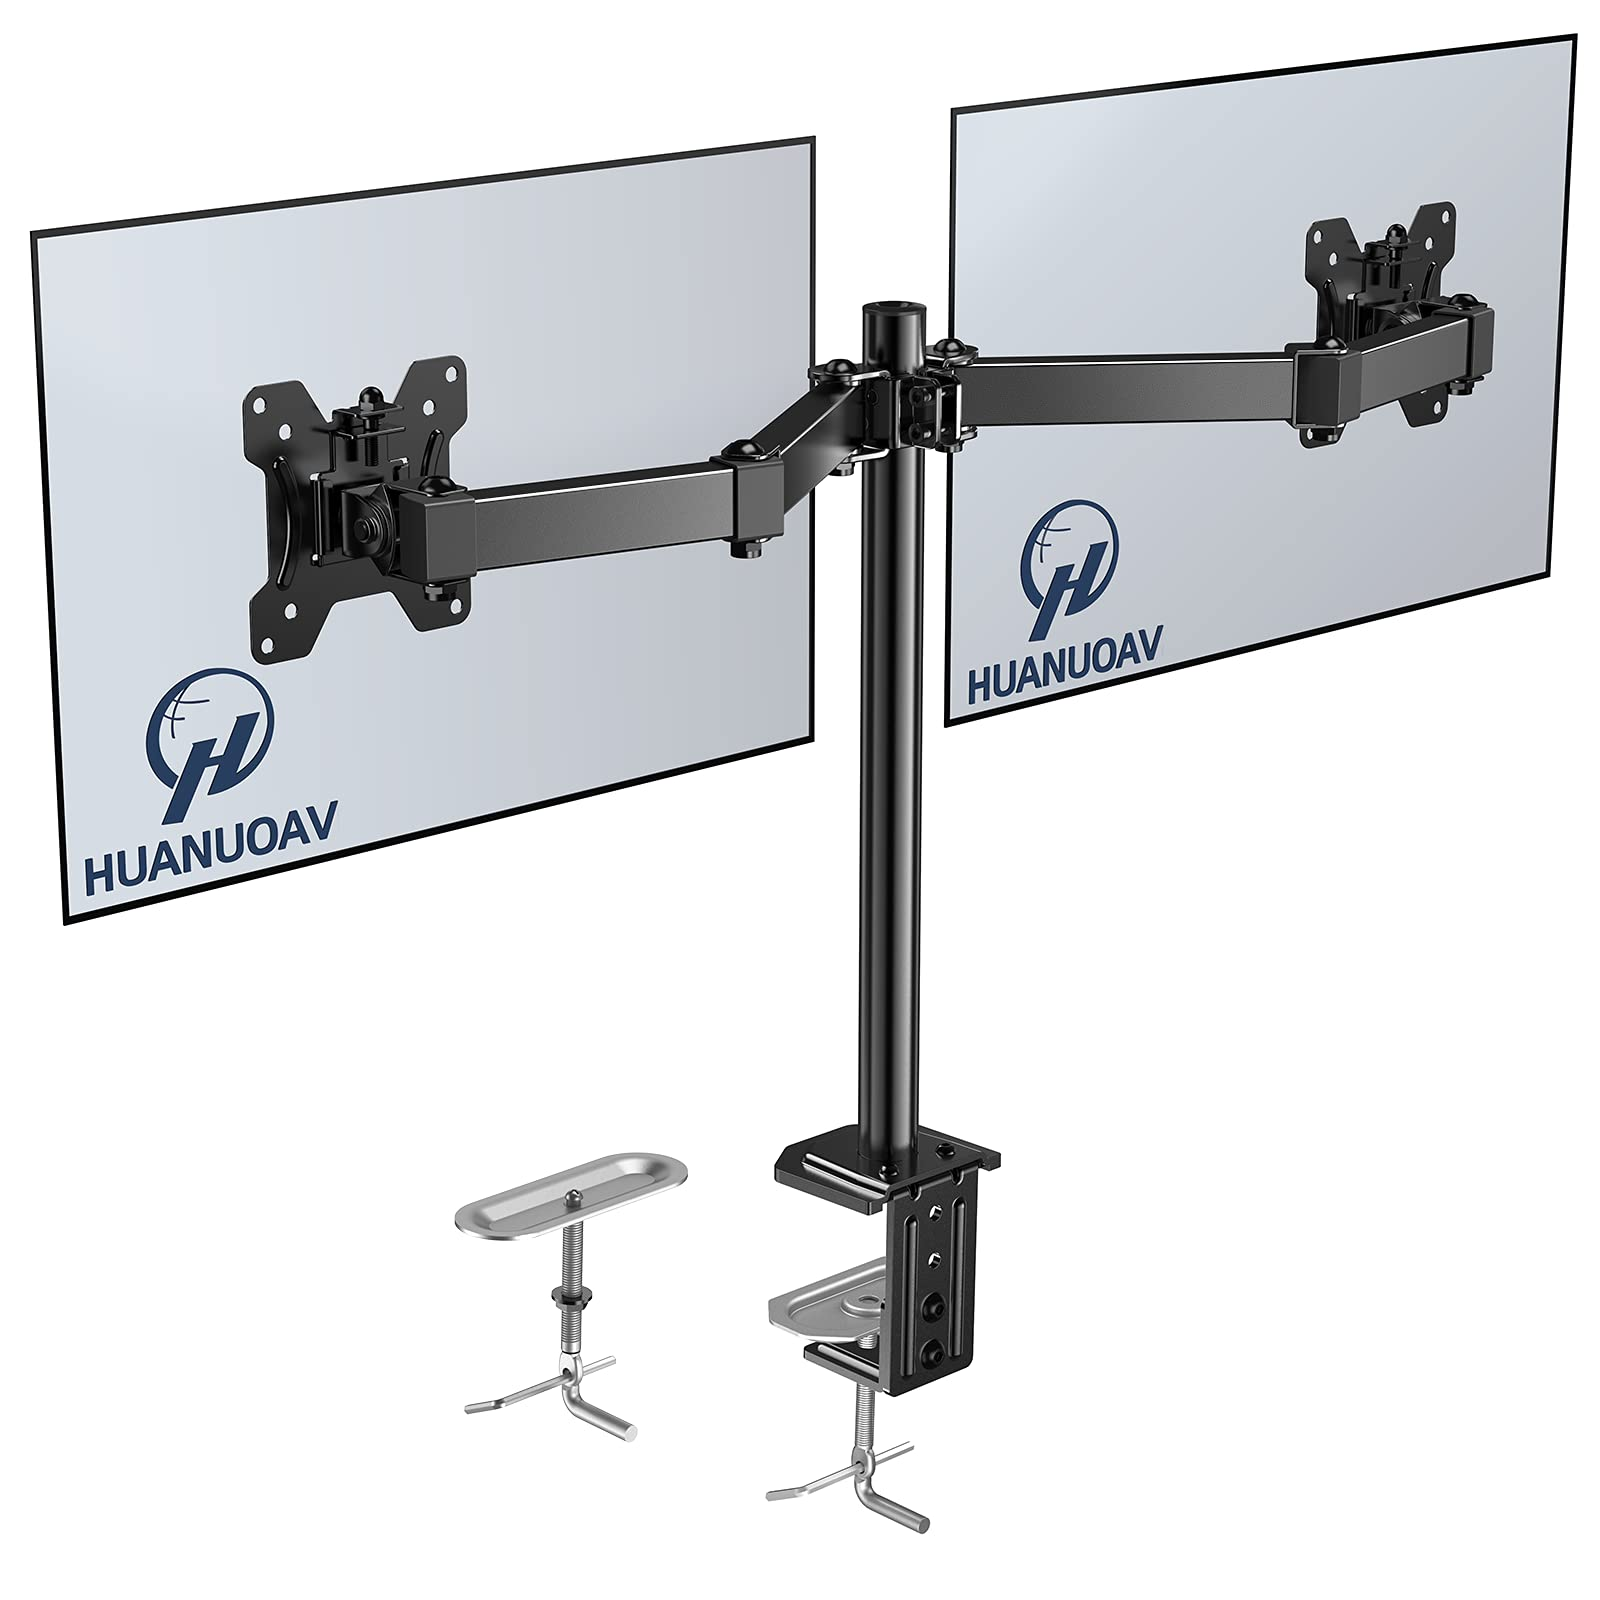 Double Monitor Stand - Dual Monitor Mount Desk Arm with C Clamp, Grommet Mounting Base for Two 13-27 Inch LCD Computer Screens - Each Holds up to 17.6lbs